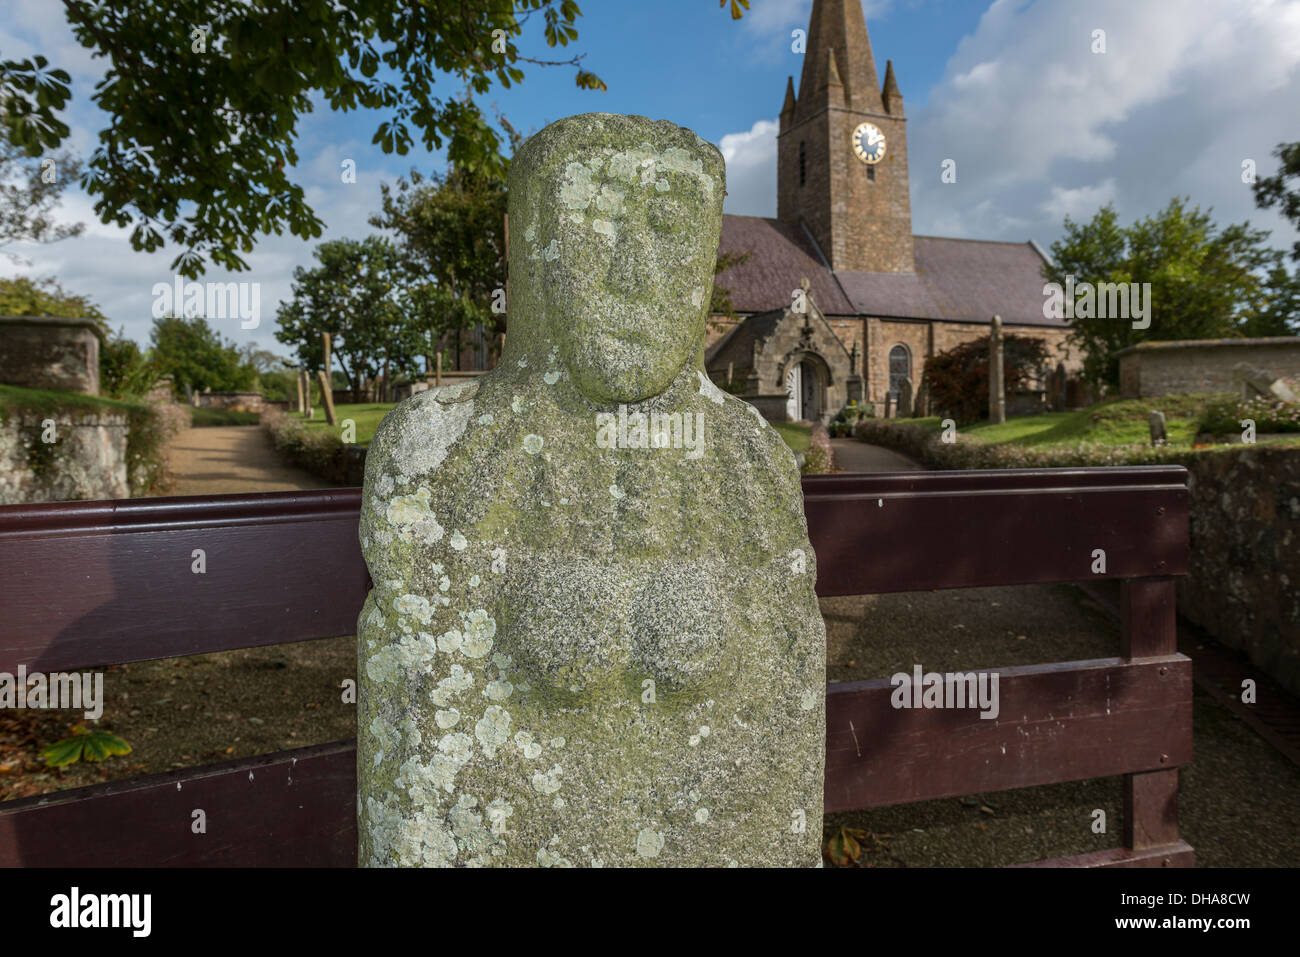 Gran' Mere du Chimquiere or Grand Mother of the Cemetery at St Martin's church, Guernsey, Channel Islands. - Stock Image